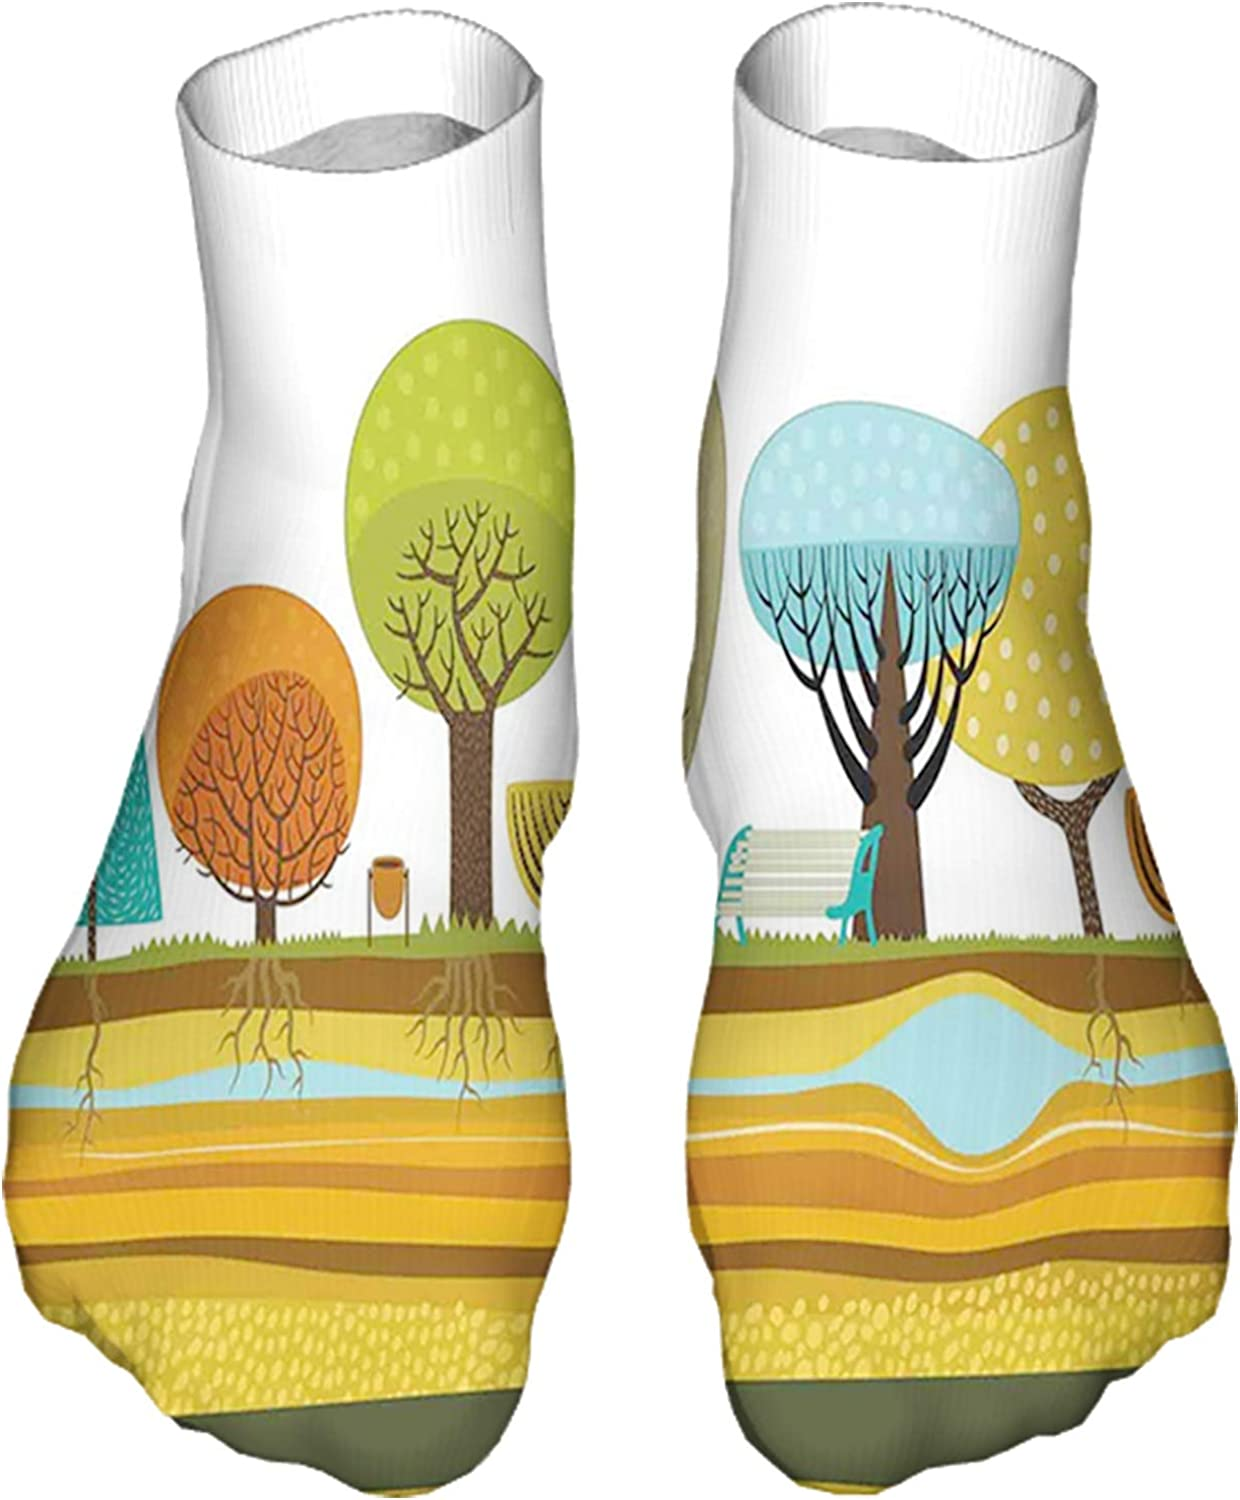 Men's and Women's Fun Socks Printed Cool Novelty Funny Socks,Illustration of Flat Park Elements in The City as Trees